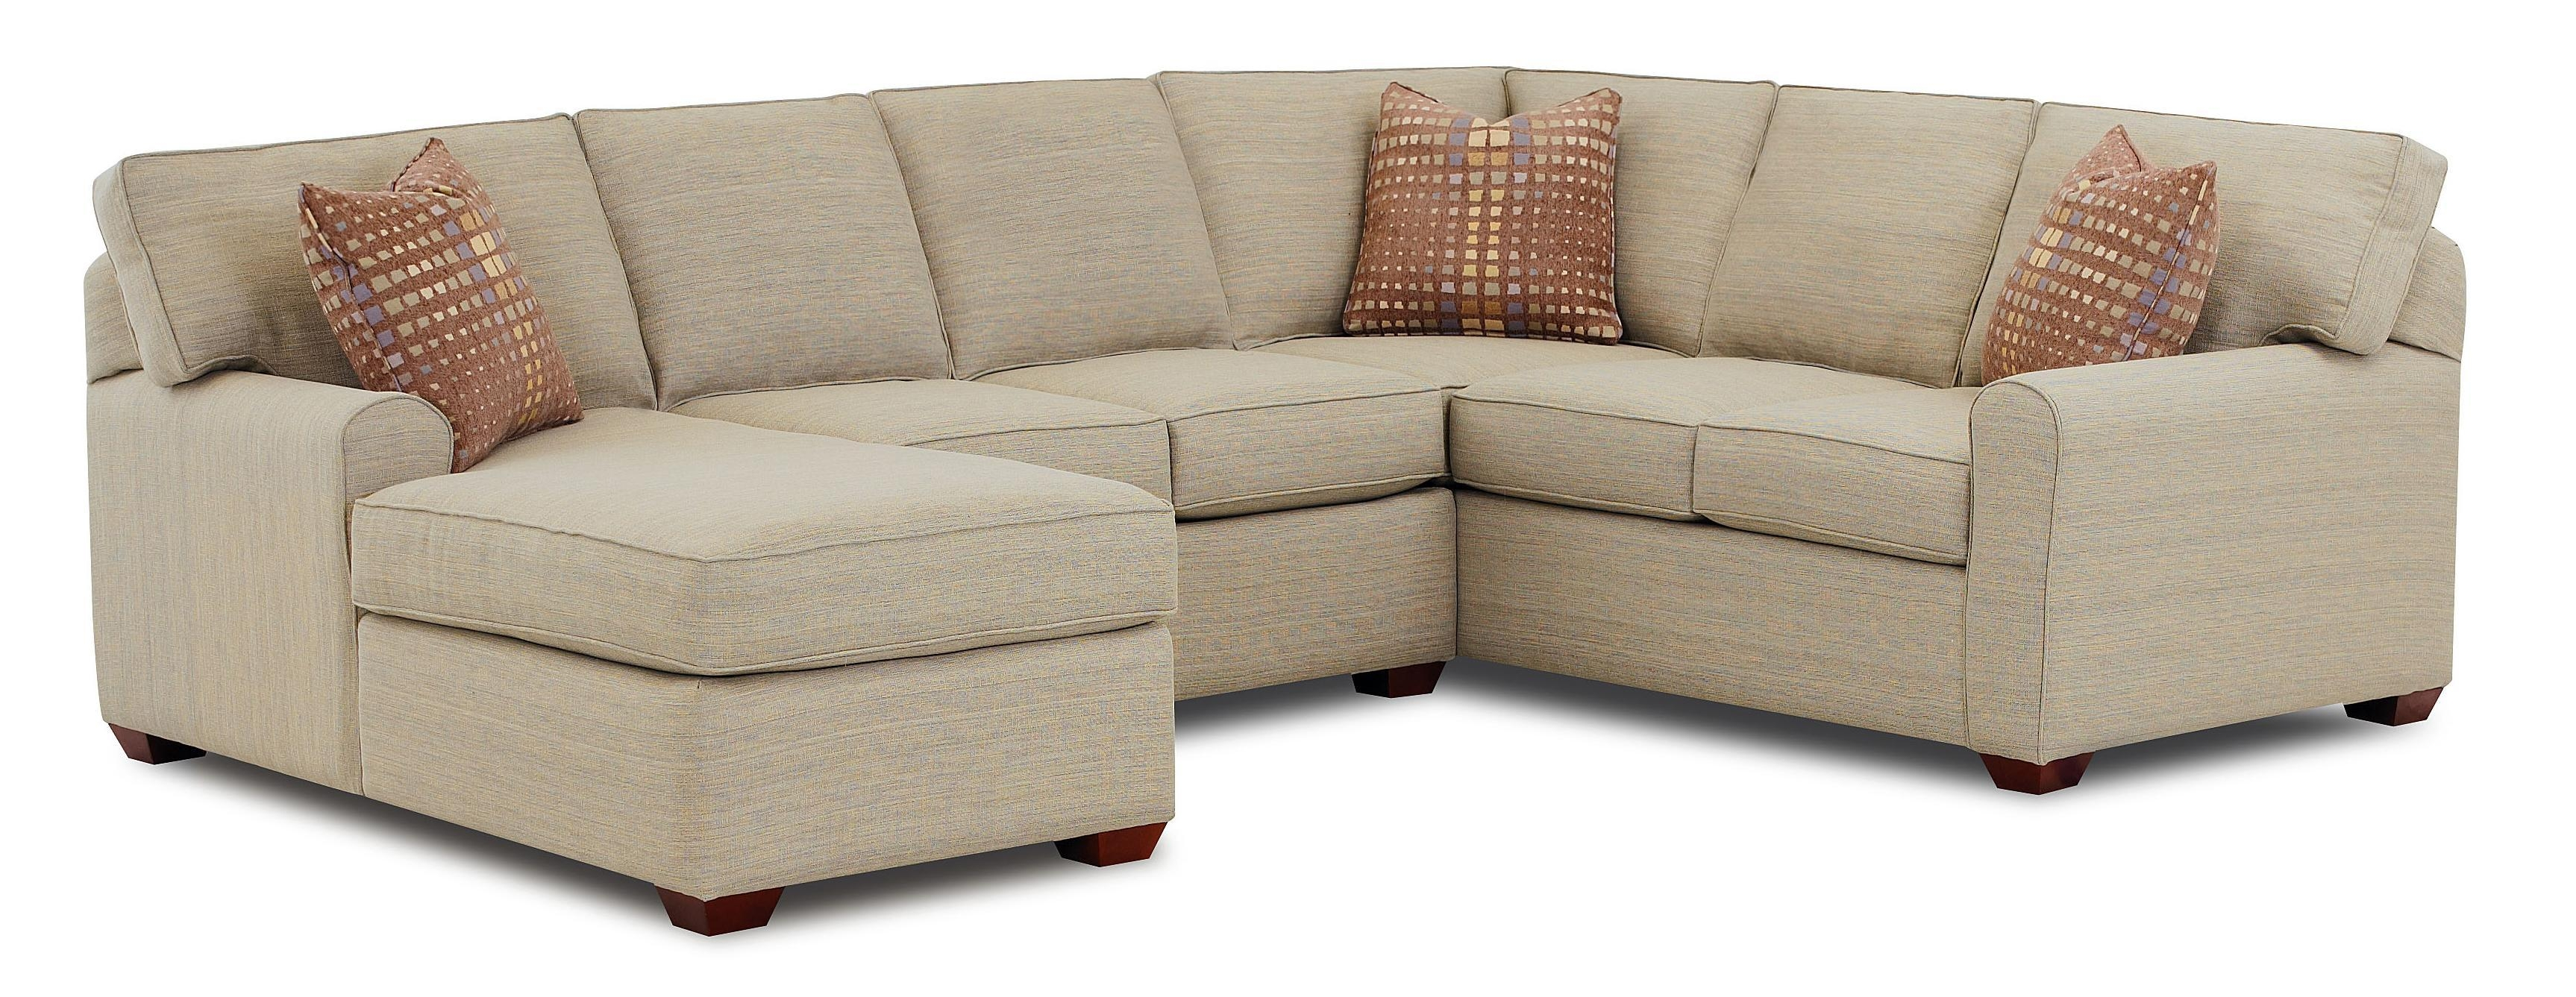 Sofas Center : Sectional Sofas With Chaise Cuddler And Throughout Broyhill Sectional Sofas (Image 13 of 15)